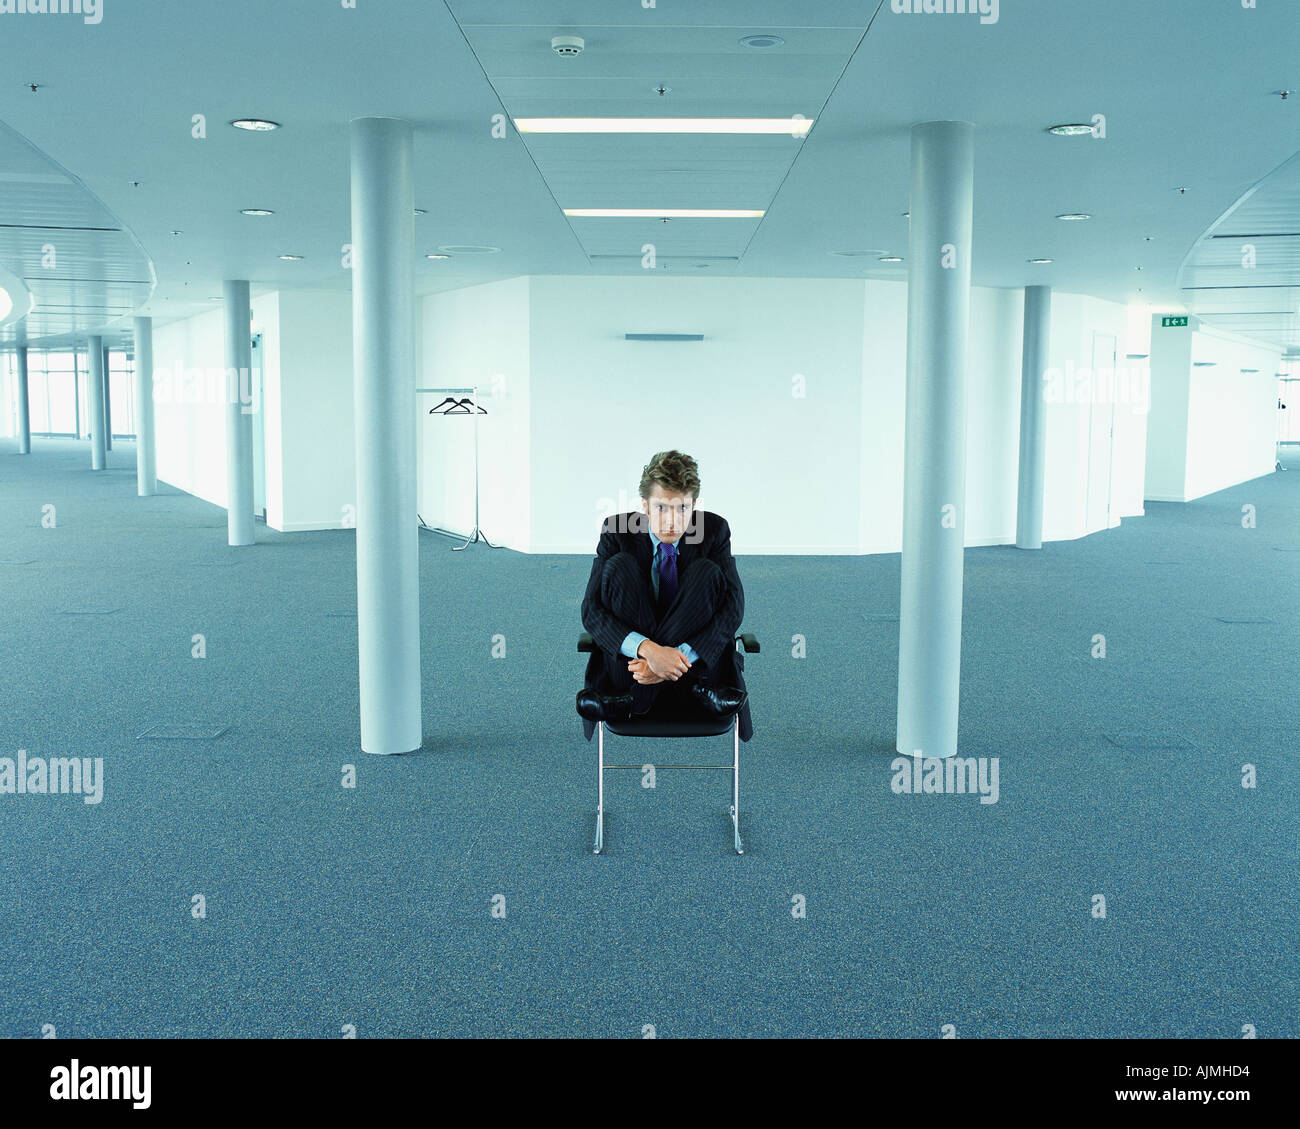 Scared looking businessman - Stock Image